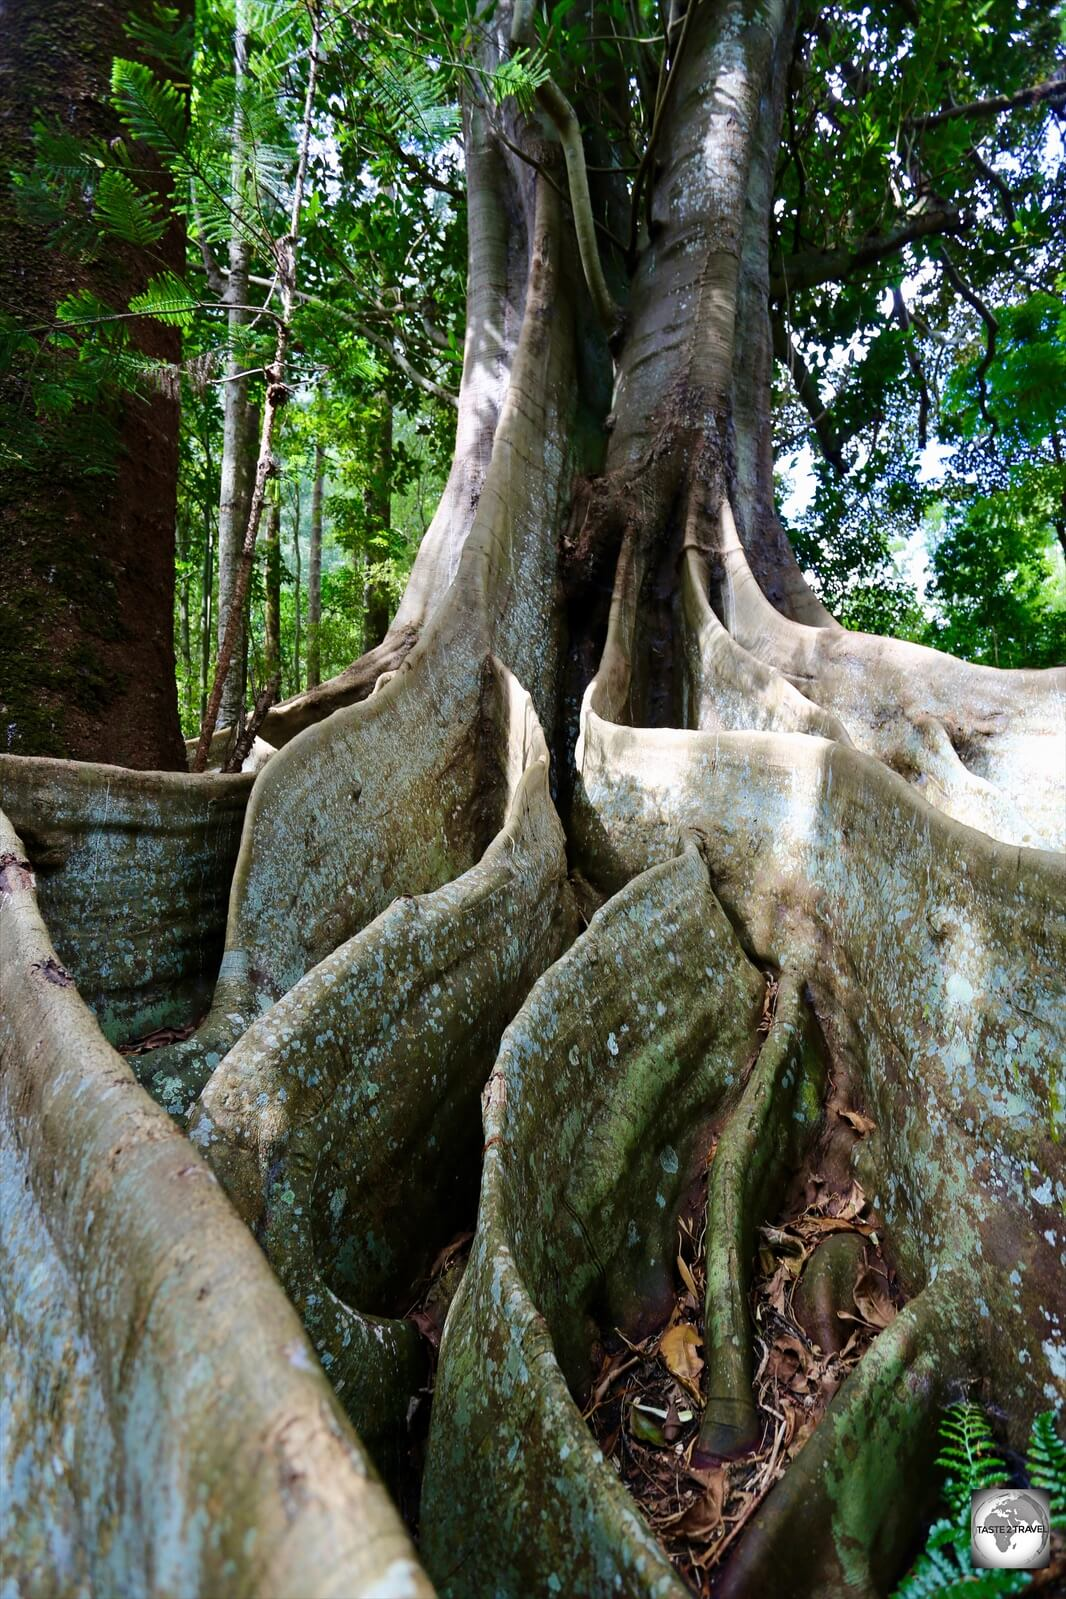 The 100 Acres reserve is home to some impressive flora, including a number of towering Moreton Bay figs.